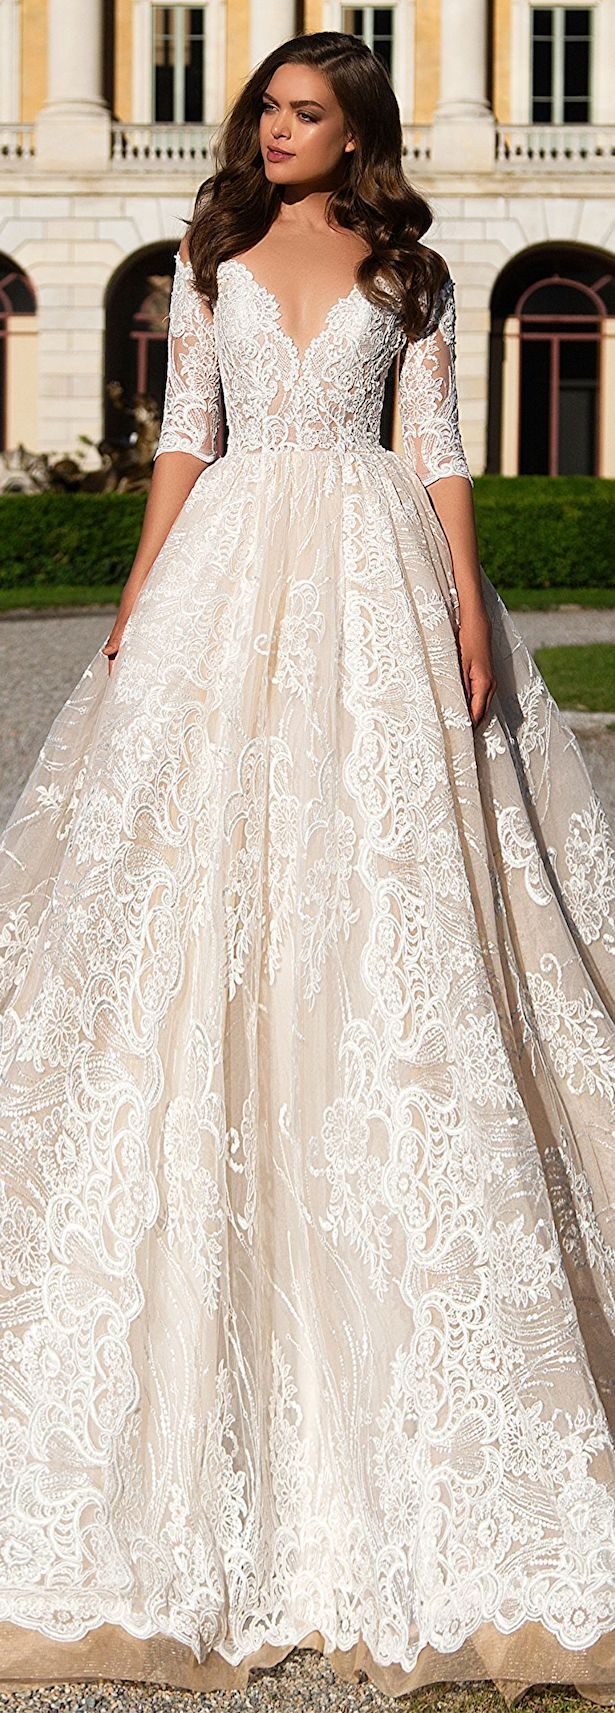 Fabulous fall wedding dresses for every type of bride wedding dress by milla nova white desire 2017 bridal collection angelina 1 junglespirit Images